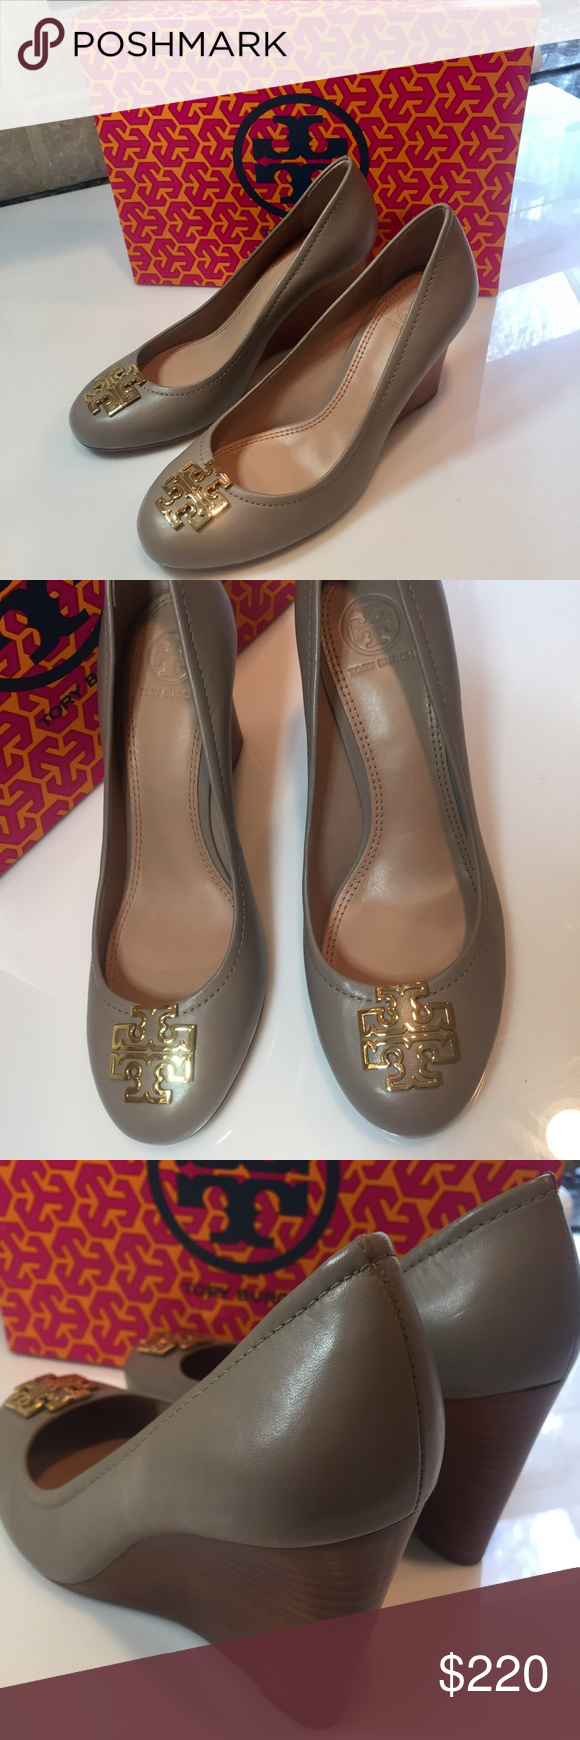 e157085a4e51 Tory Burch Melinda Wedges French Gray Gold Size 8 Tory Burch Melinda  Tumbled Leather 85 mm wedge gold TB logo. French Gray